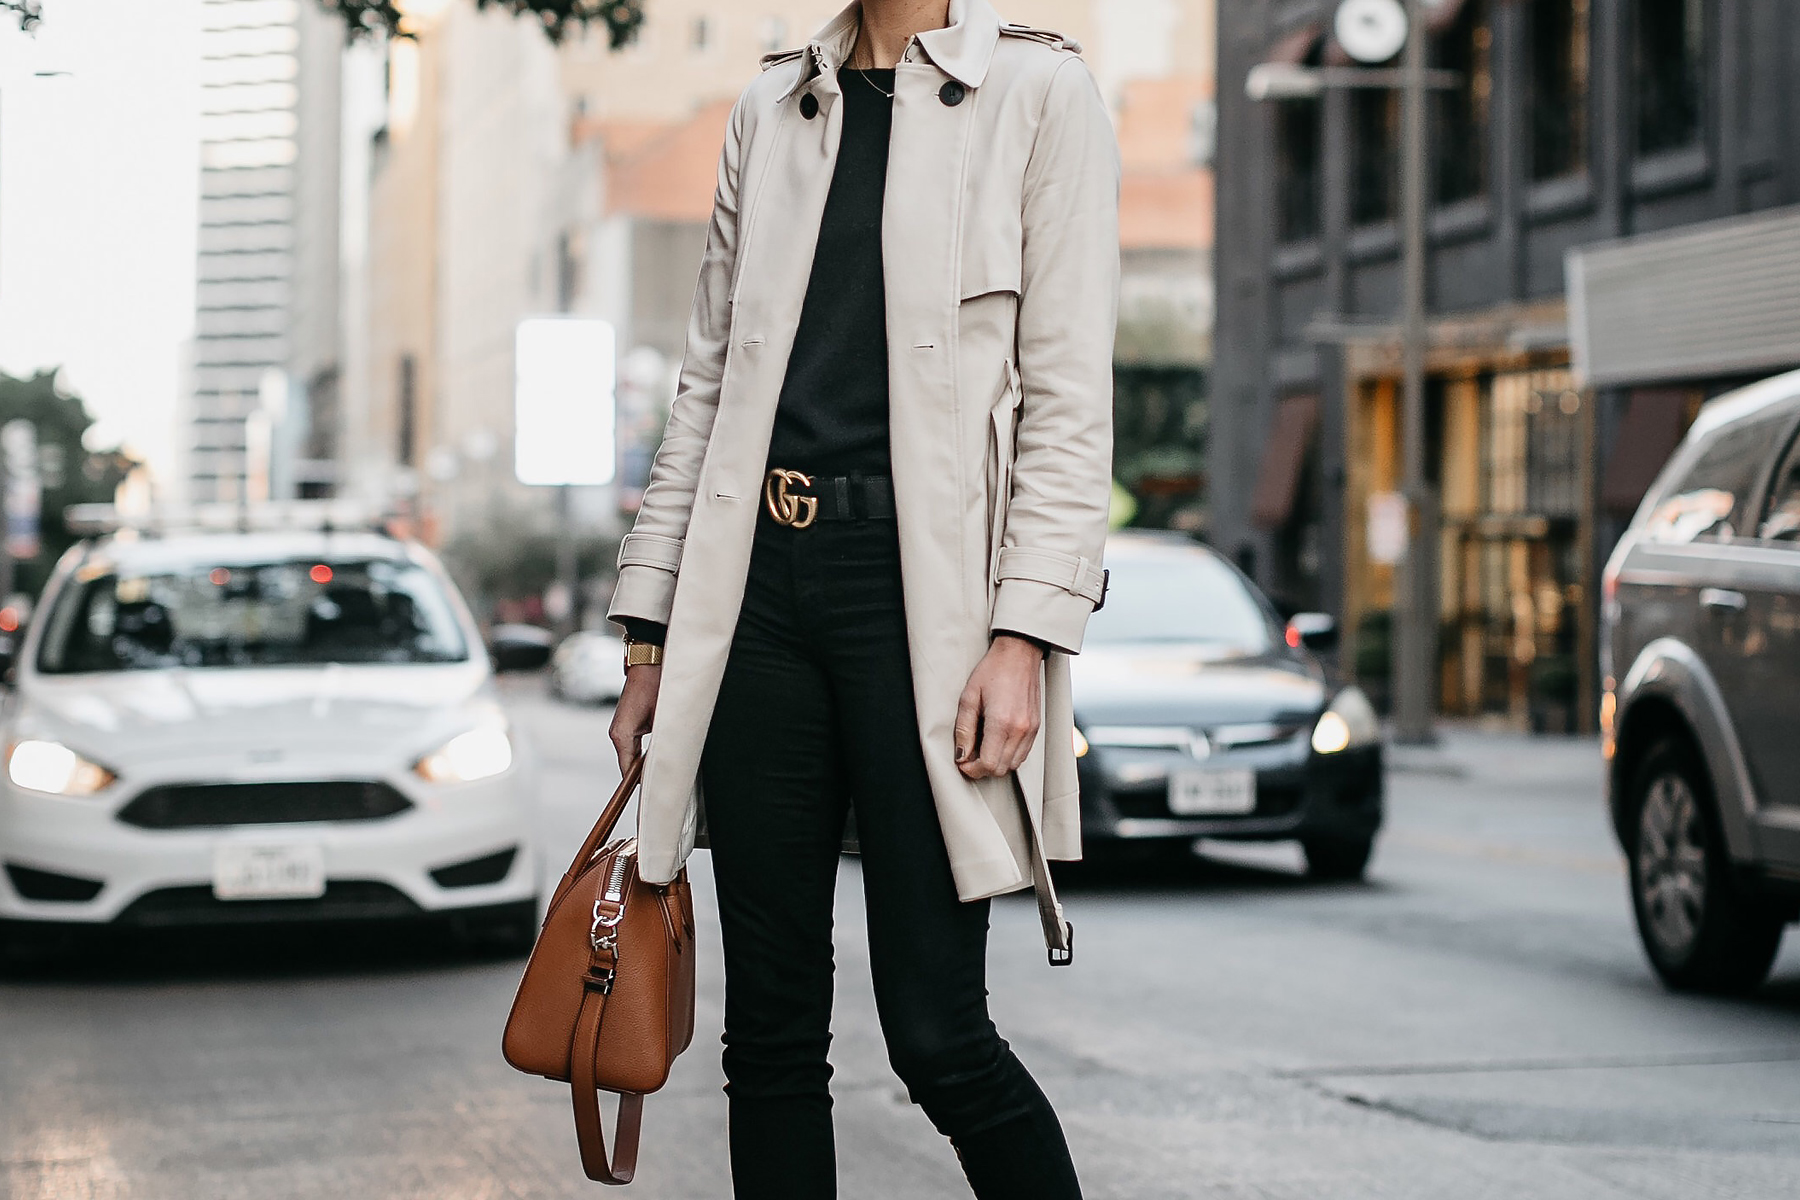 Club Monaco Trench Coat Black Sweater Black Skinny Jeans Gucci Marmont Belt Givenchy Antigona Cognac Satchel Fashion Jackson Dallas Blogger Fashion Blogger Street Style